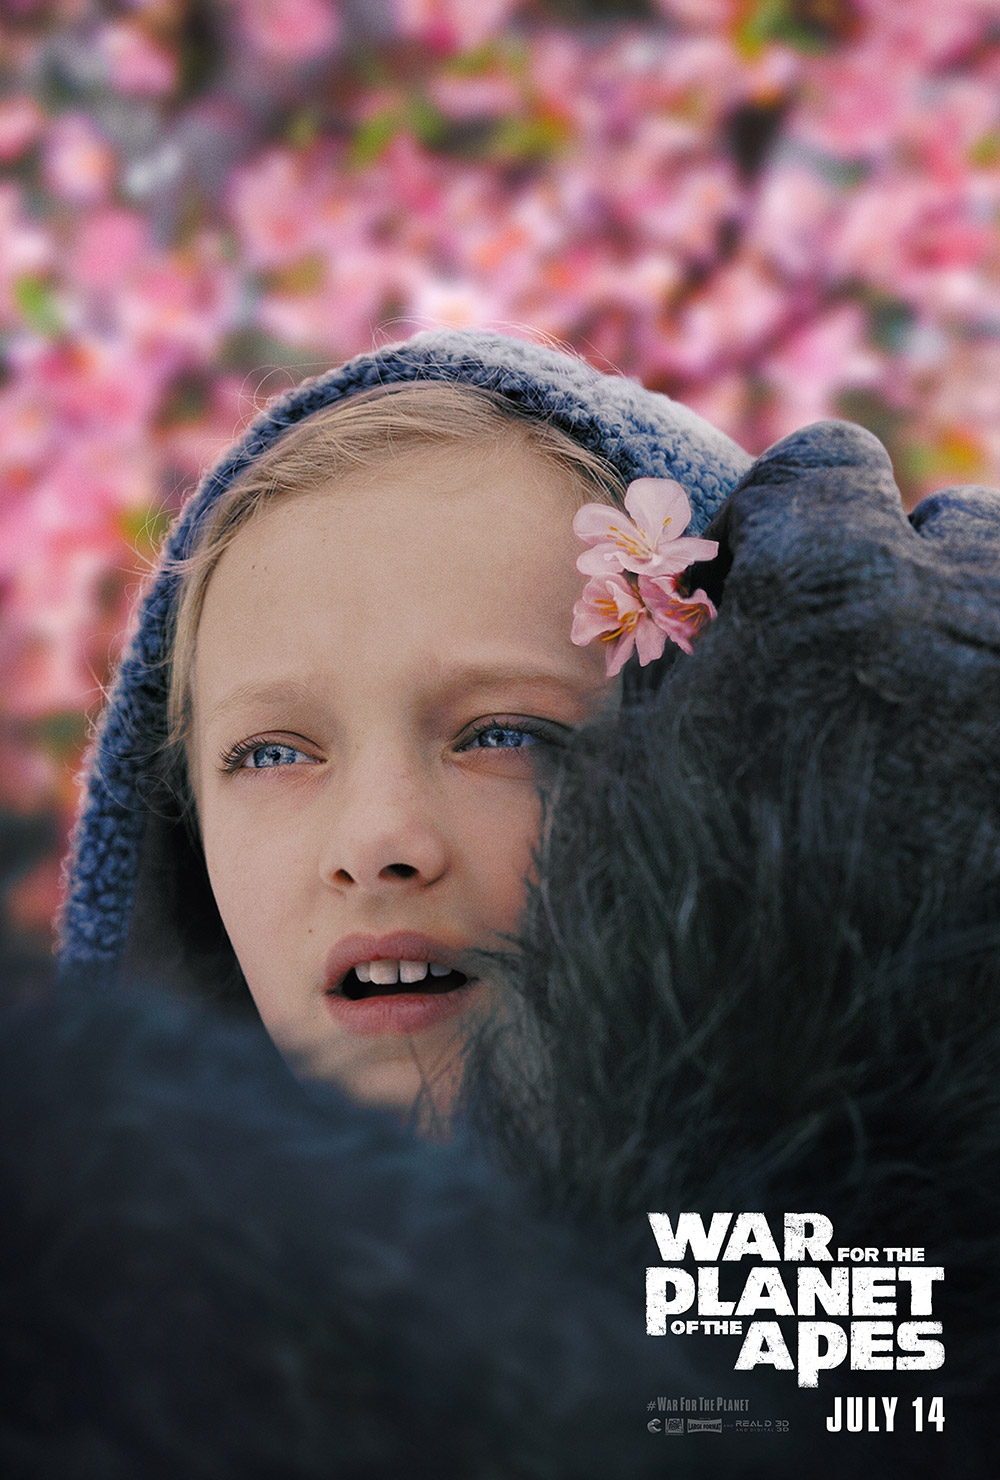 apes-one-sheet-flowers.jpg